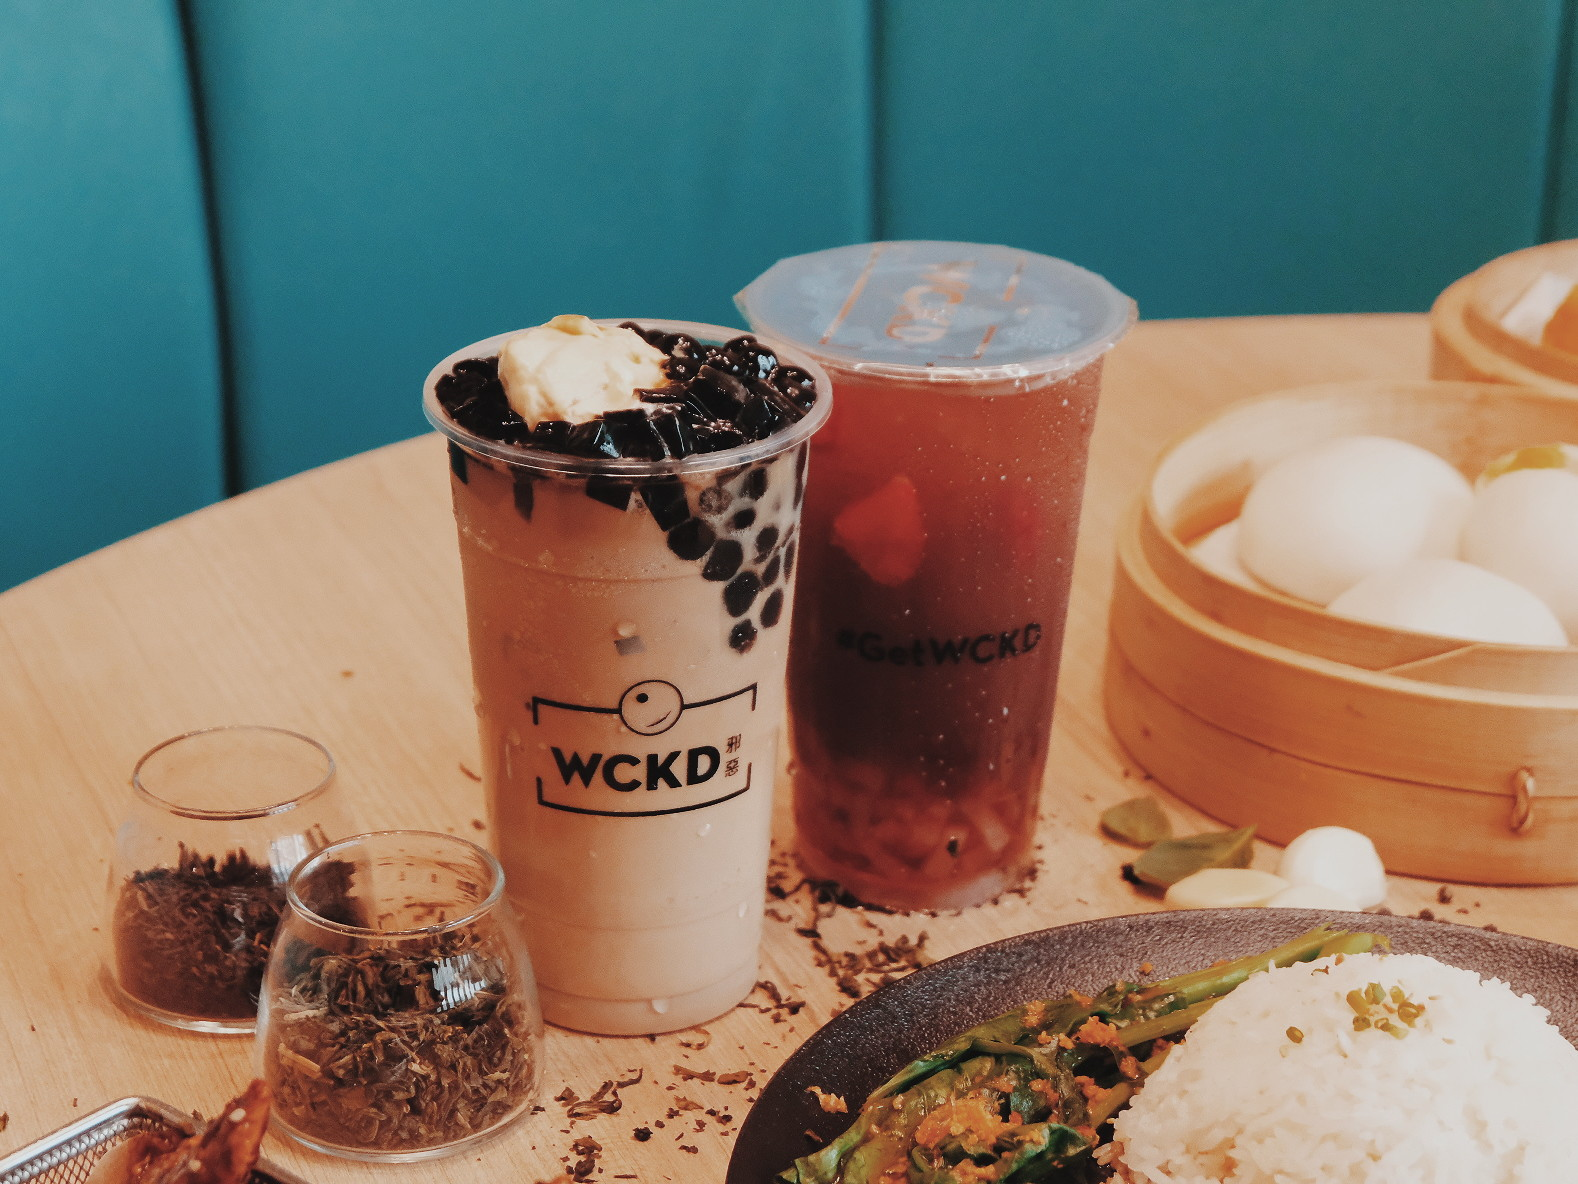 WCKD: Authentic Taiwan Milk Tea